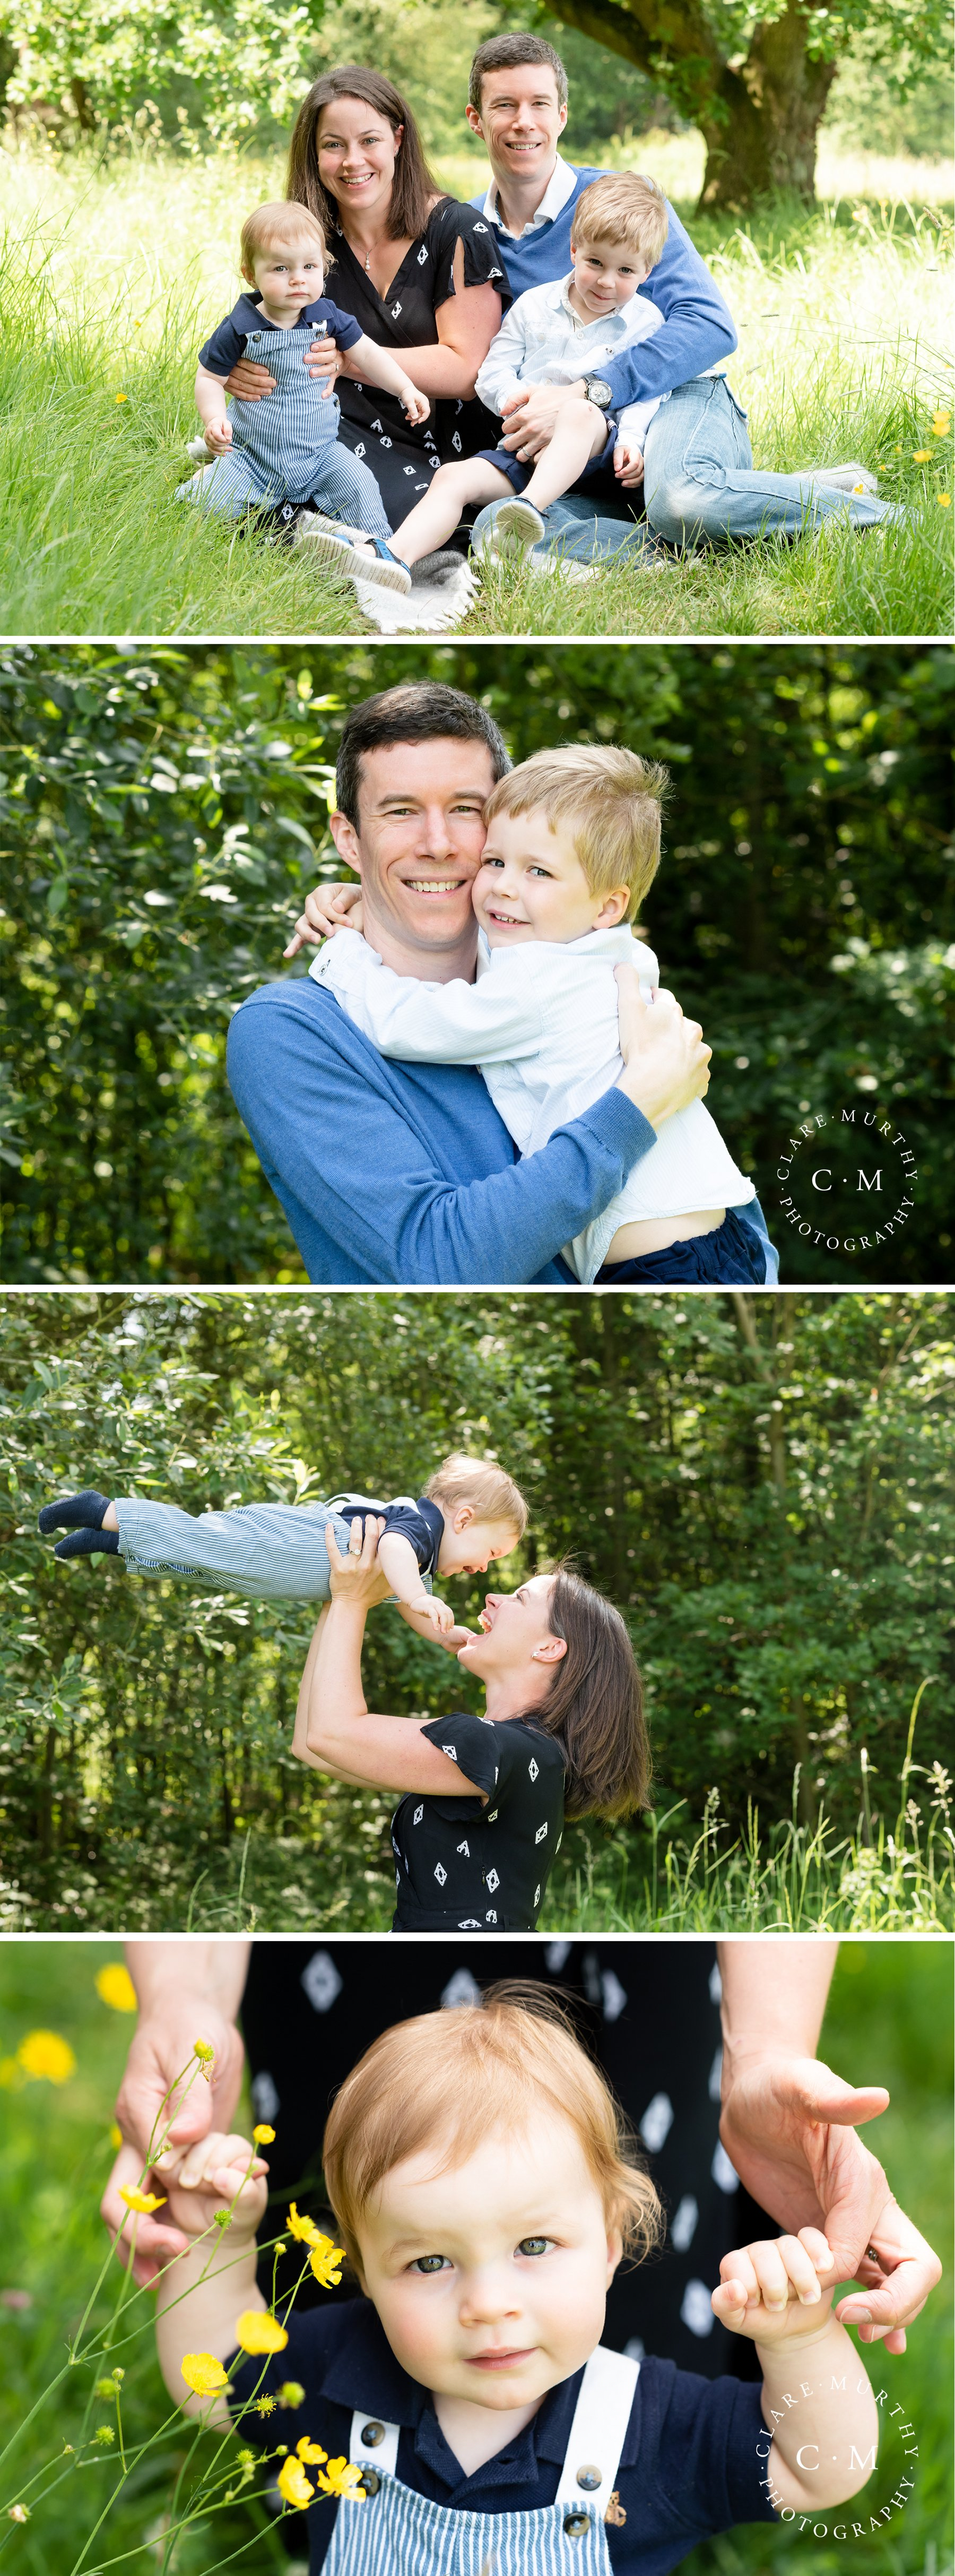 Family Photography Mini Sessions